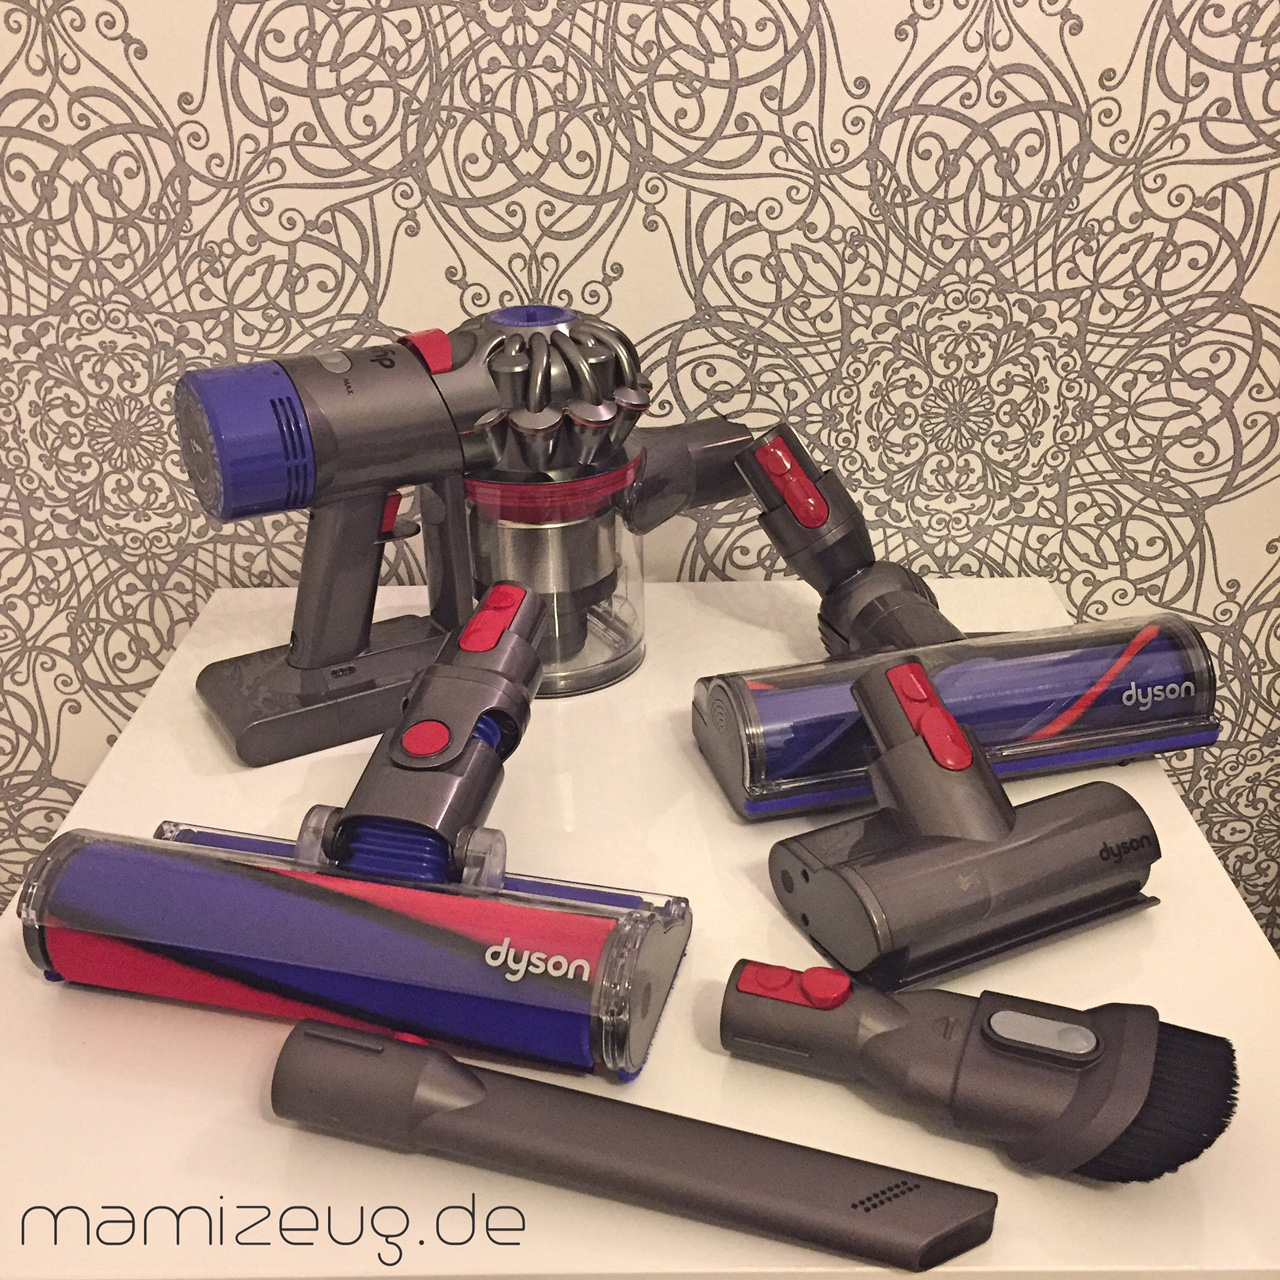 dyson akkusauger v8 absolute im test mama. Black Bedroom Furniture Sets. Home Design Ideas